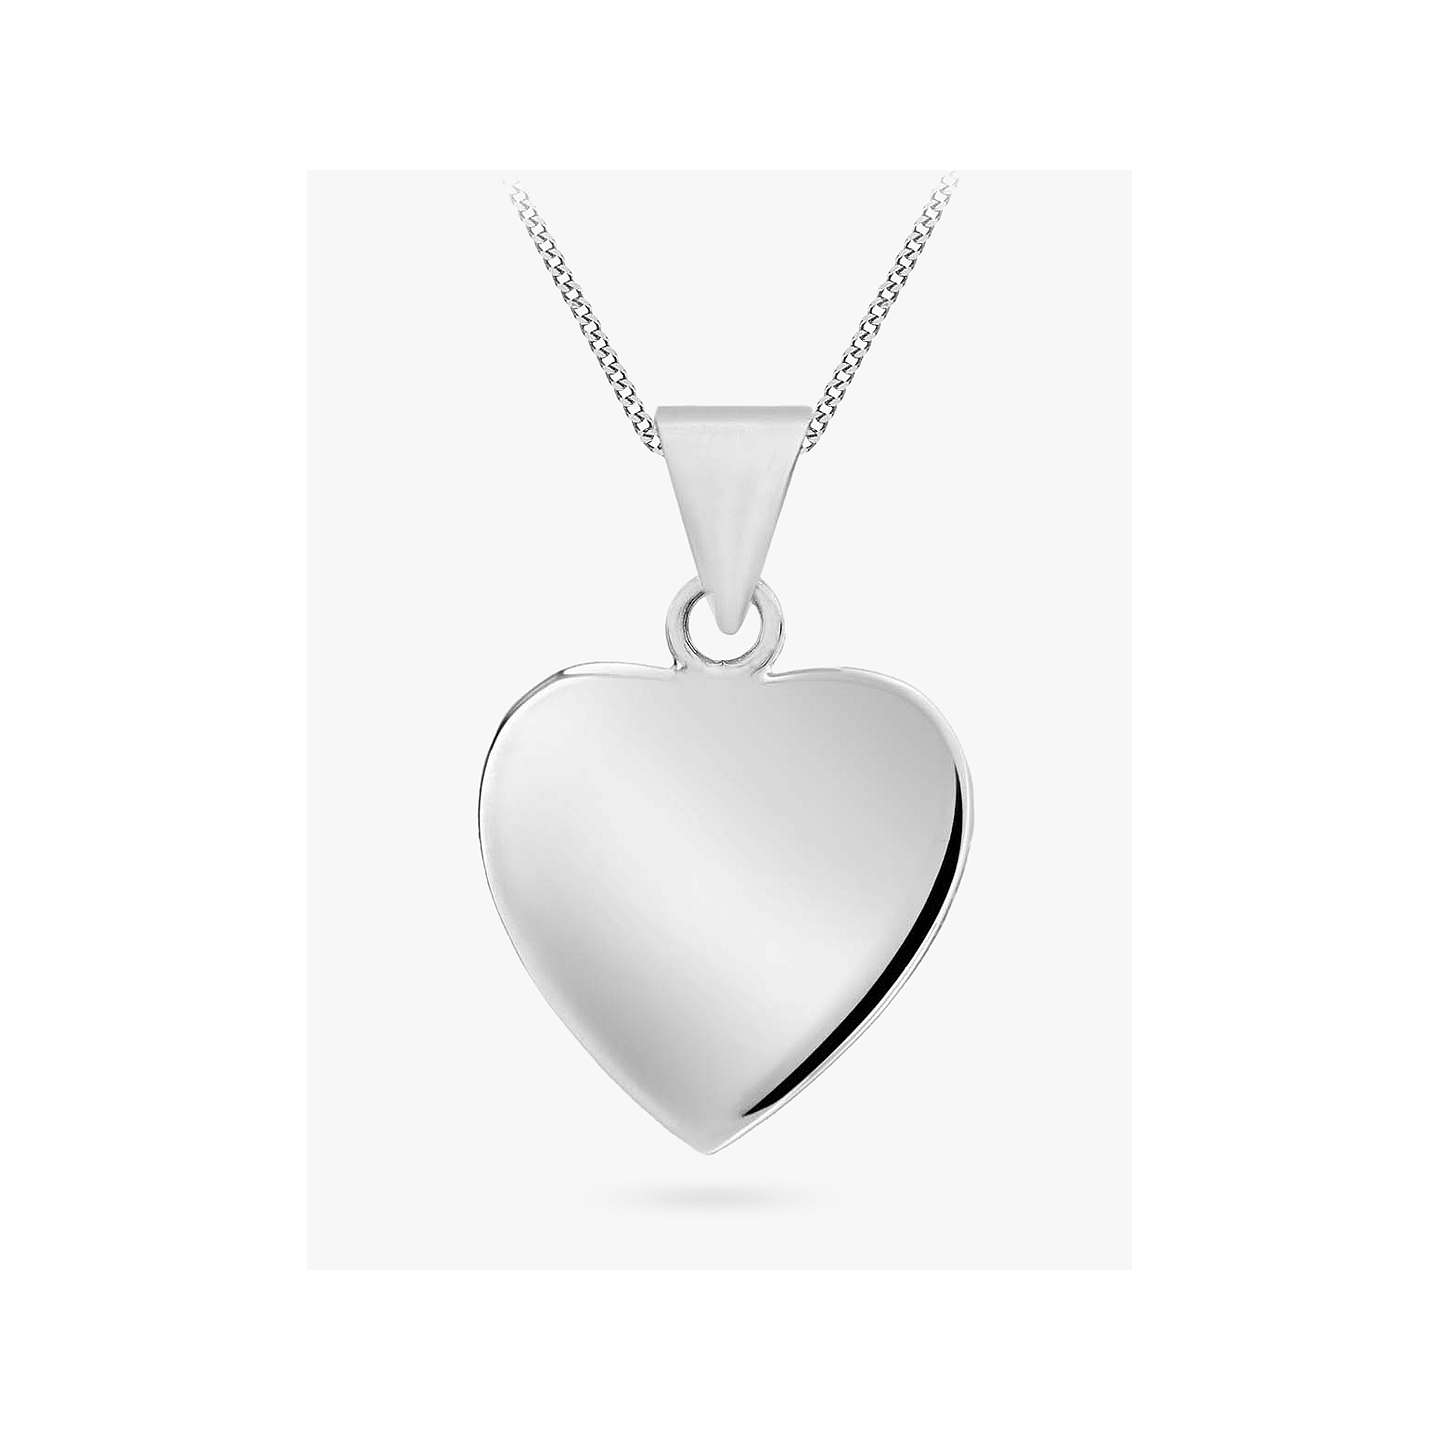 schwartz silver jewellery heart liza necklace delicate